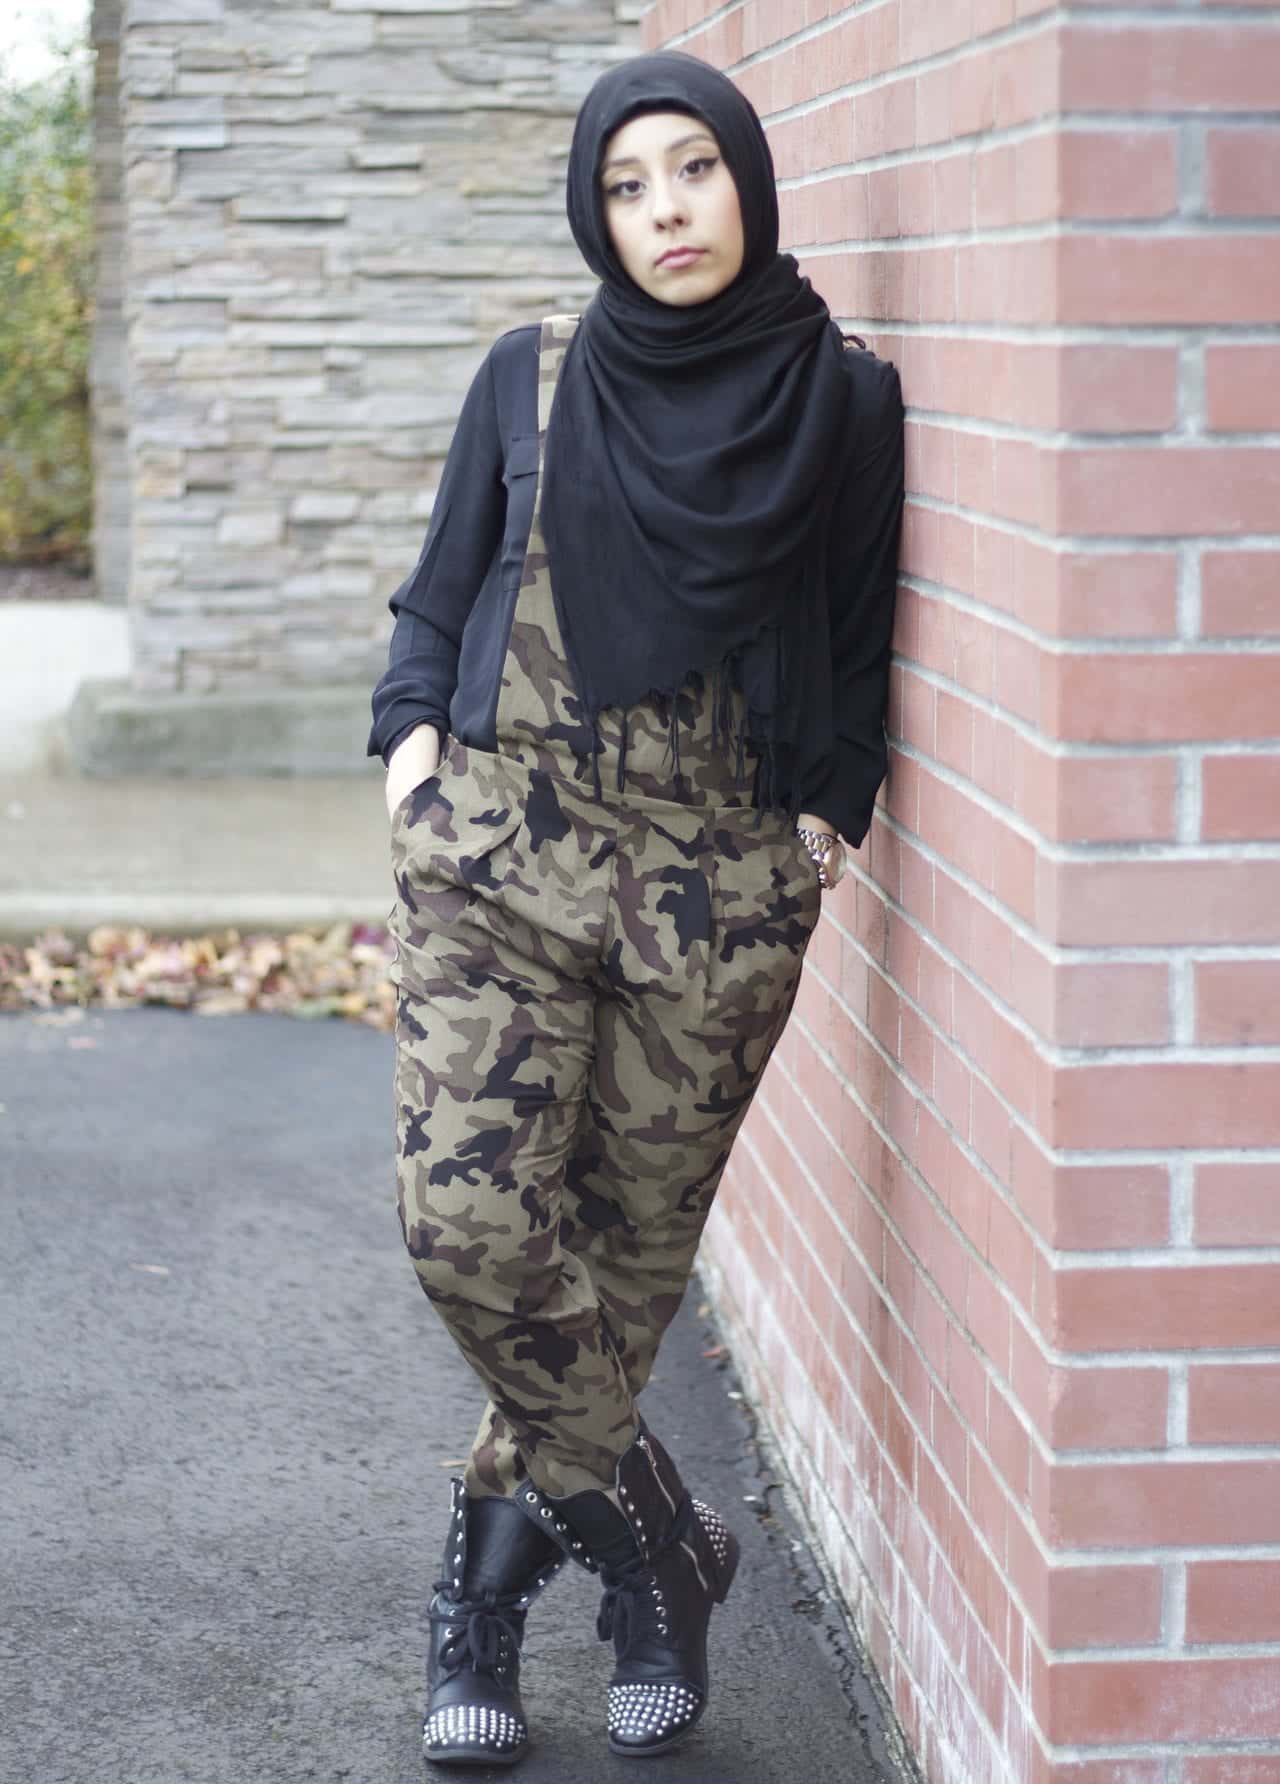 hijab-style-SIGNATUREINGOLD-camo Hijab Sneakers Style-11 ways to Wear Sneakers with Hijab Outfit